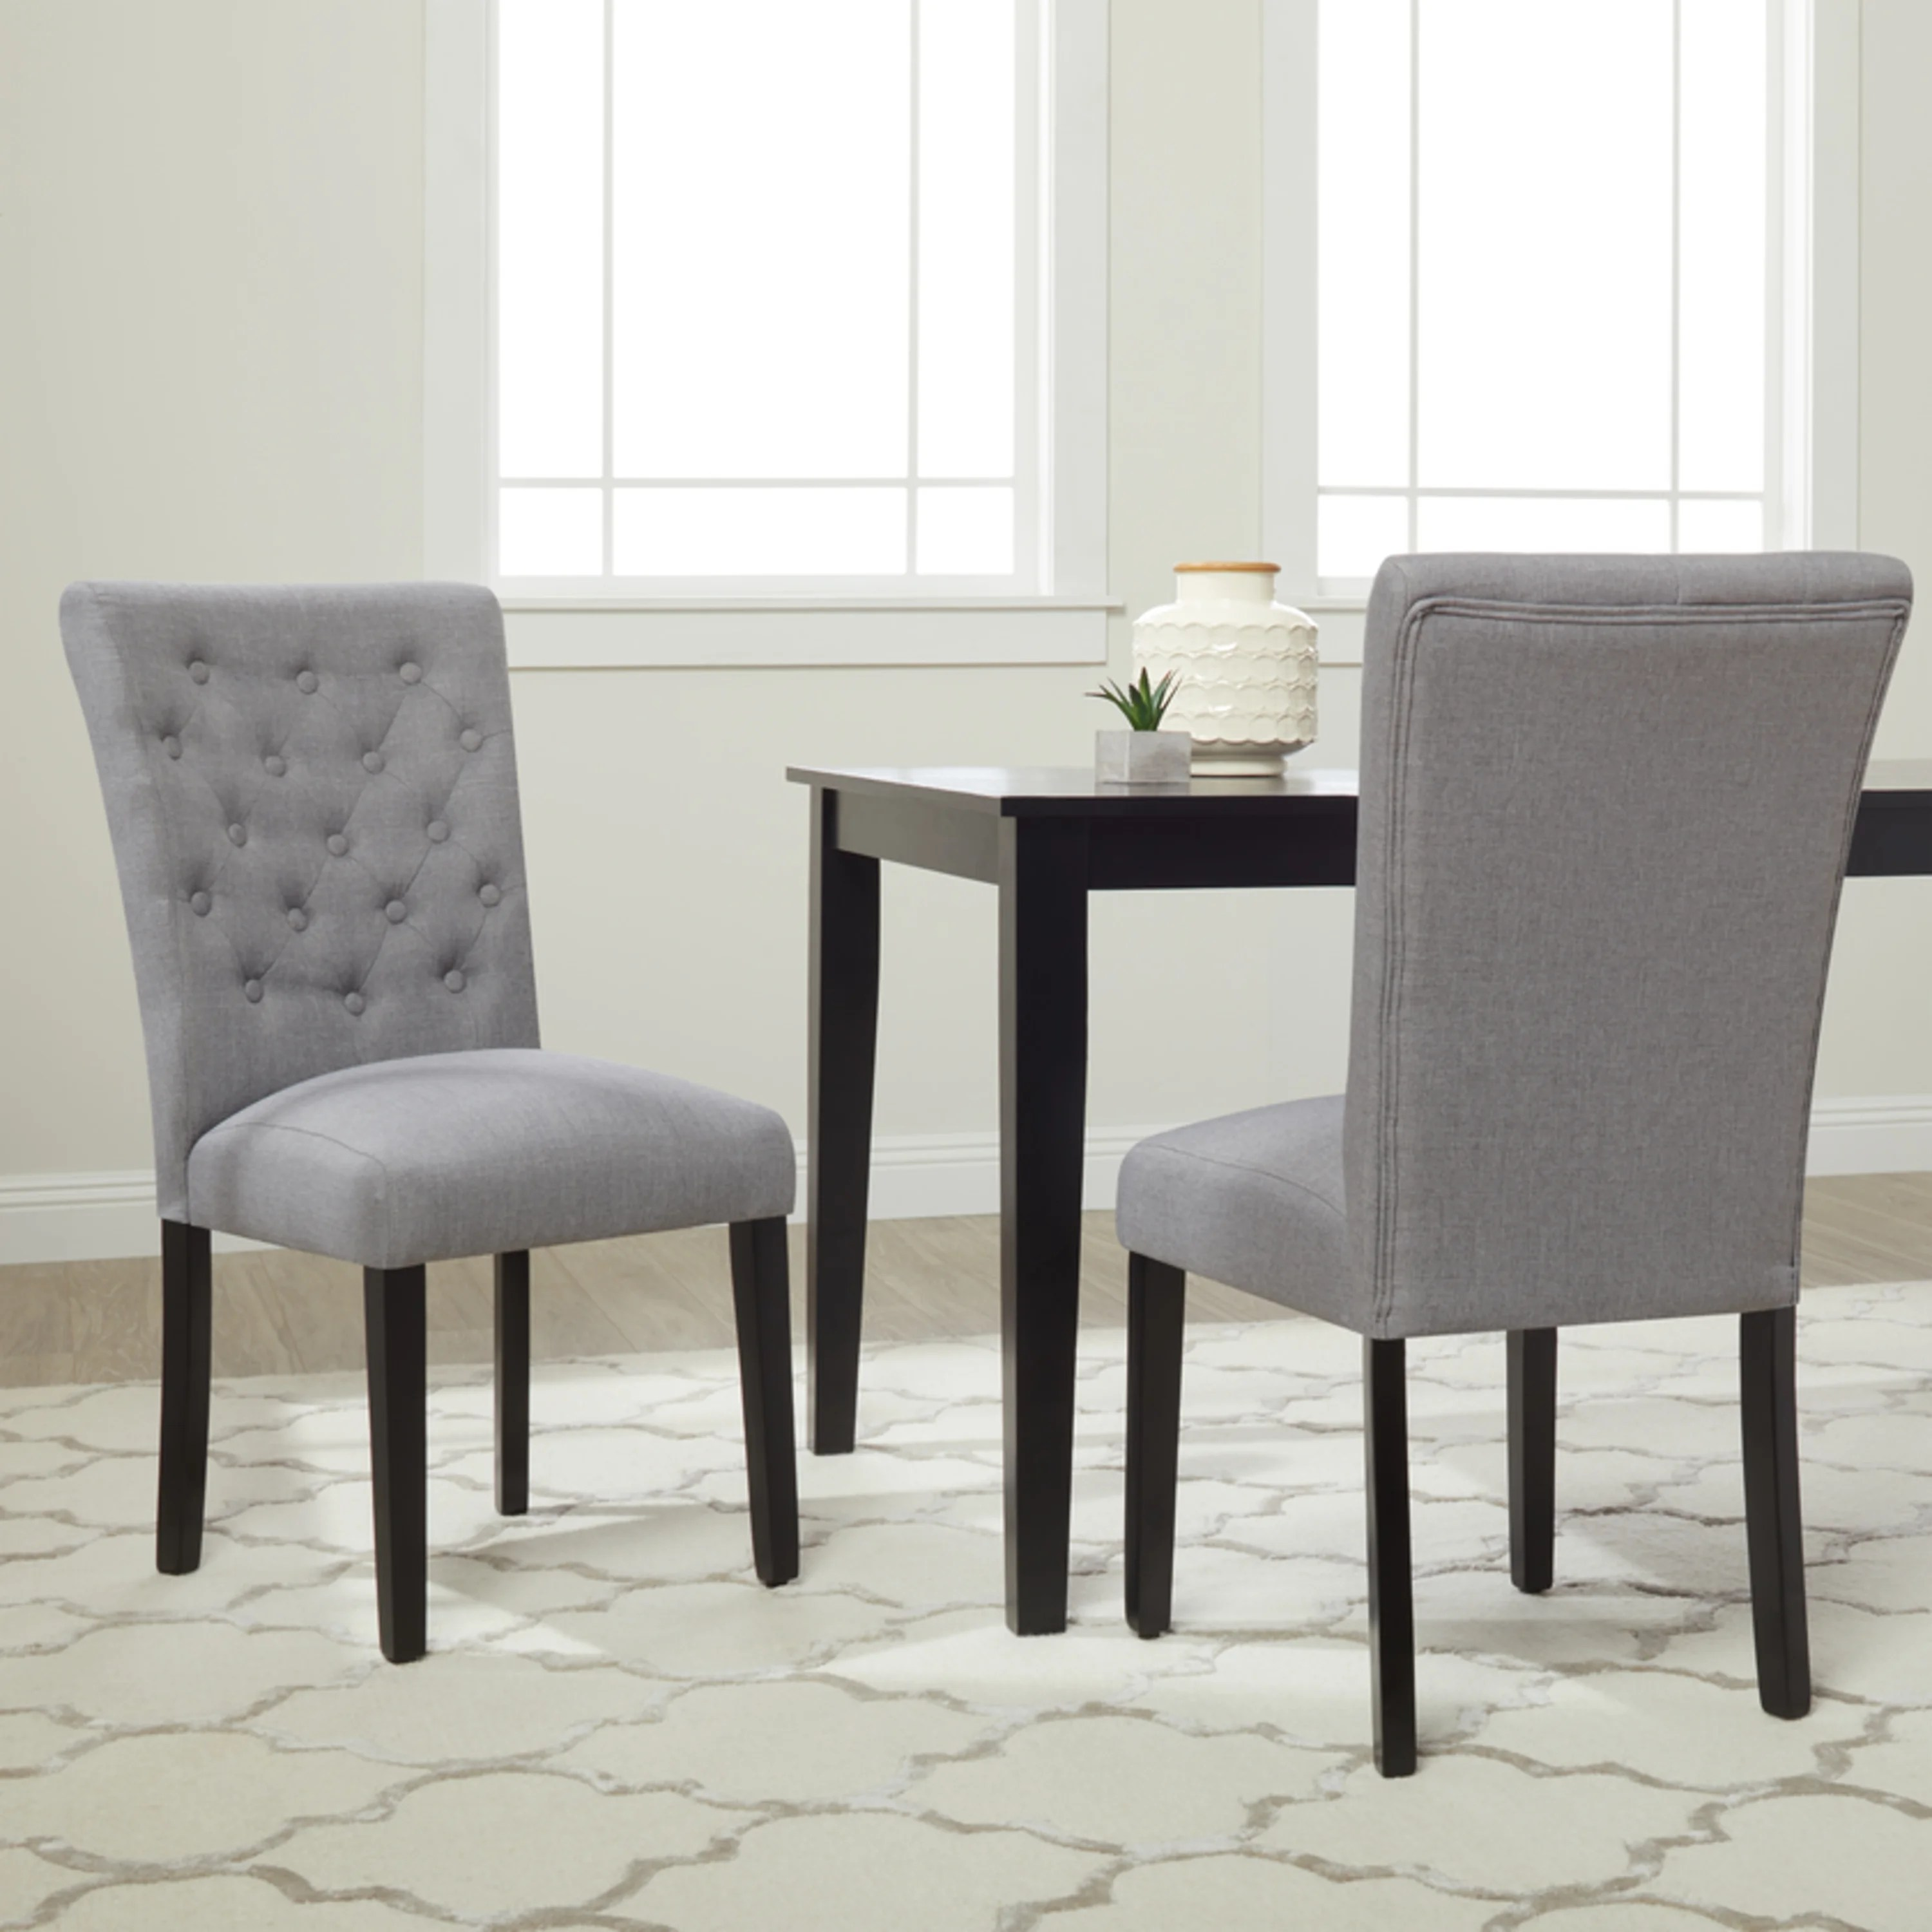 Dining Chair Set Of 2 Monsoon Sopri Upholstered Dining Chairs Set Of 2